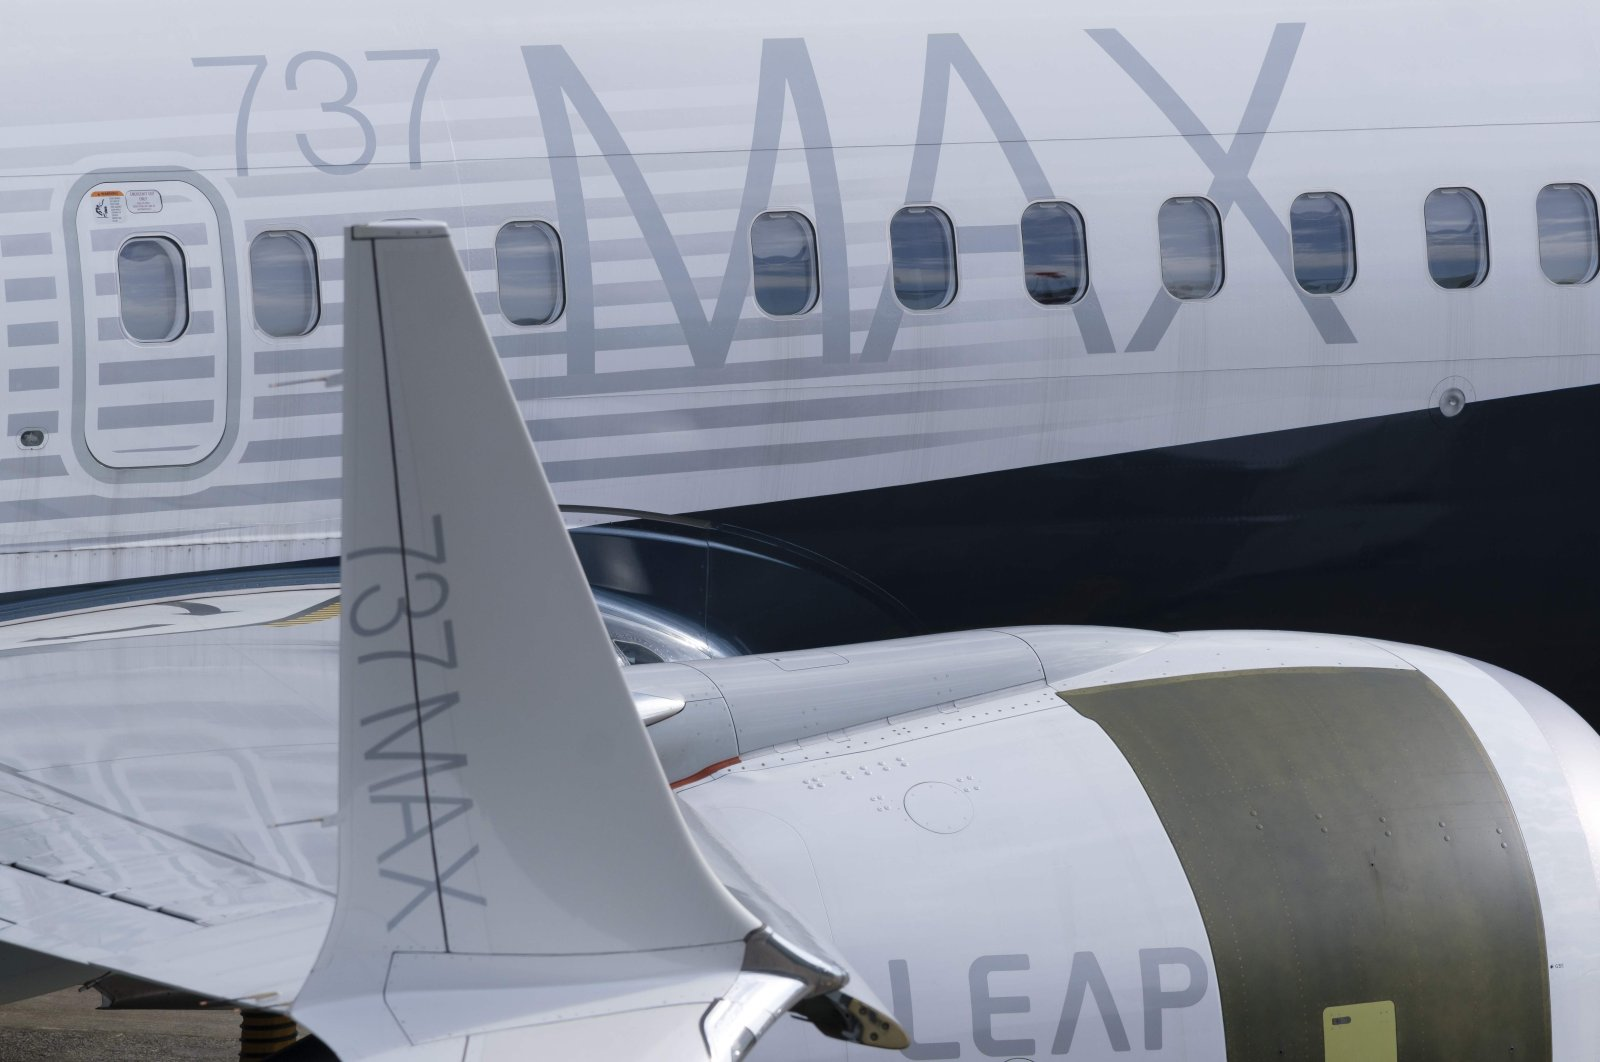 In this file photo a 737 MAX airplane is pictured on he tarmac with its signature winglet and fuel efficient engines outside the company's factory on March 11, 2019 in Renton, Washington. (AFP Photo)